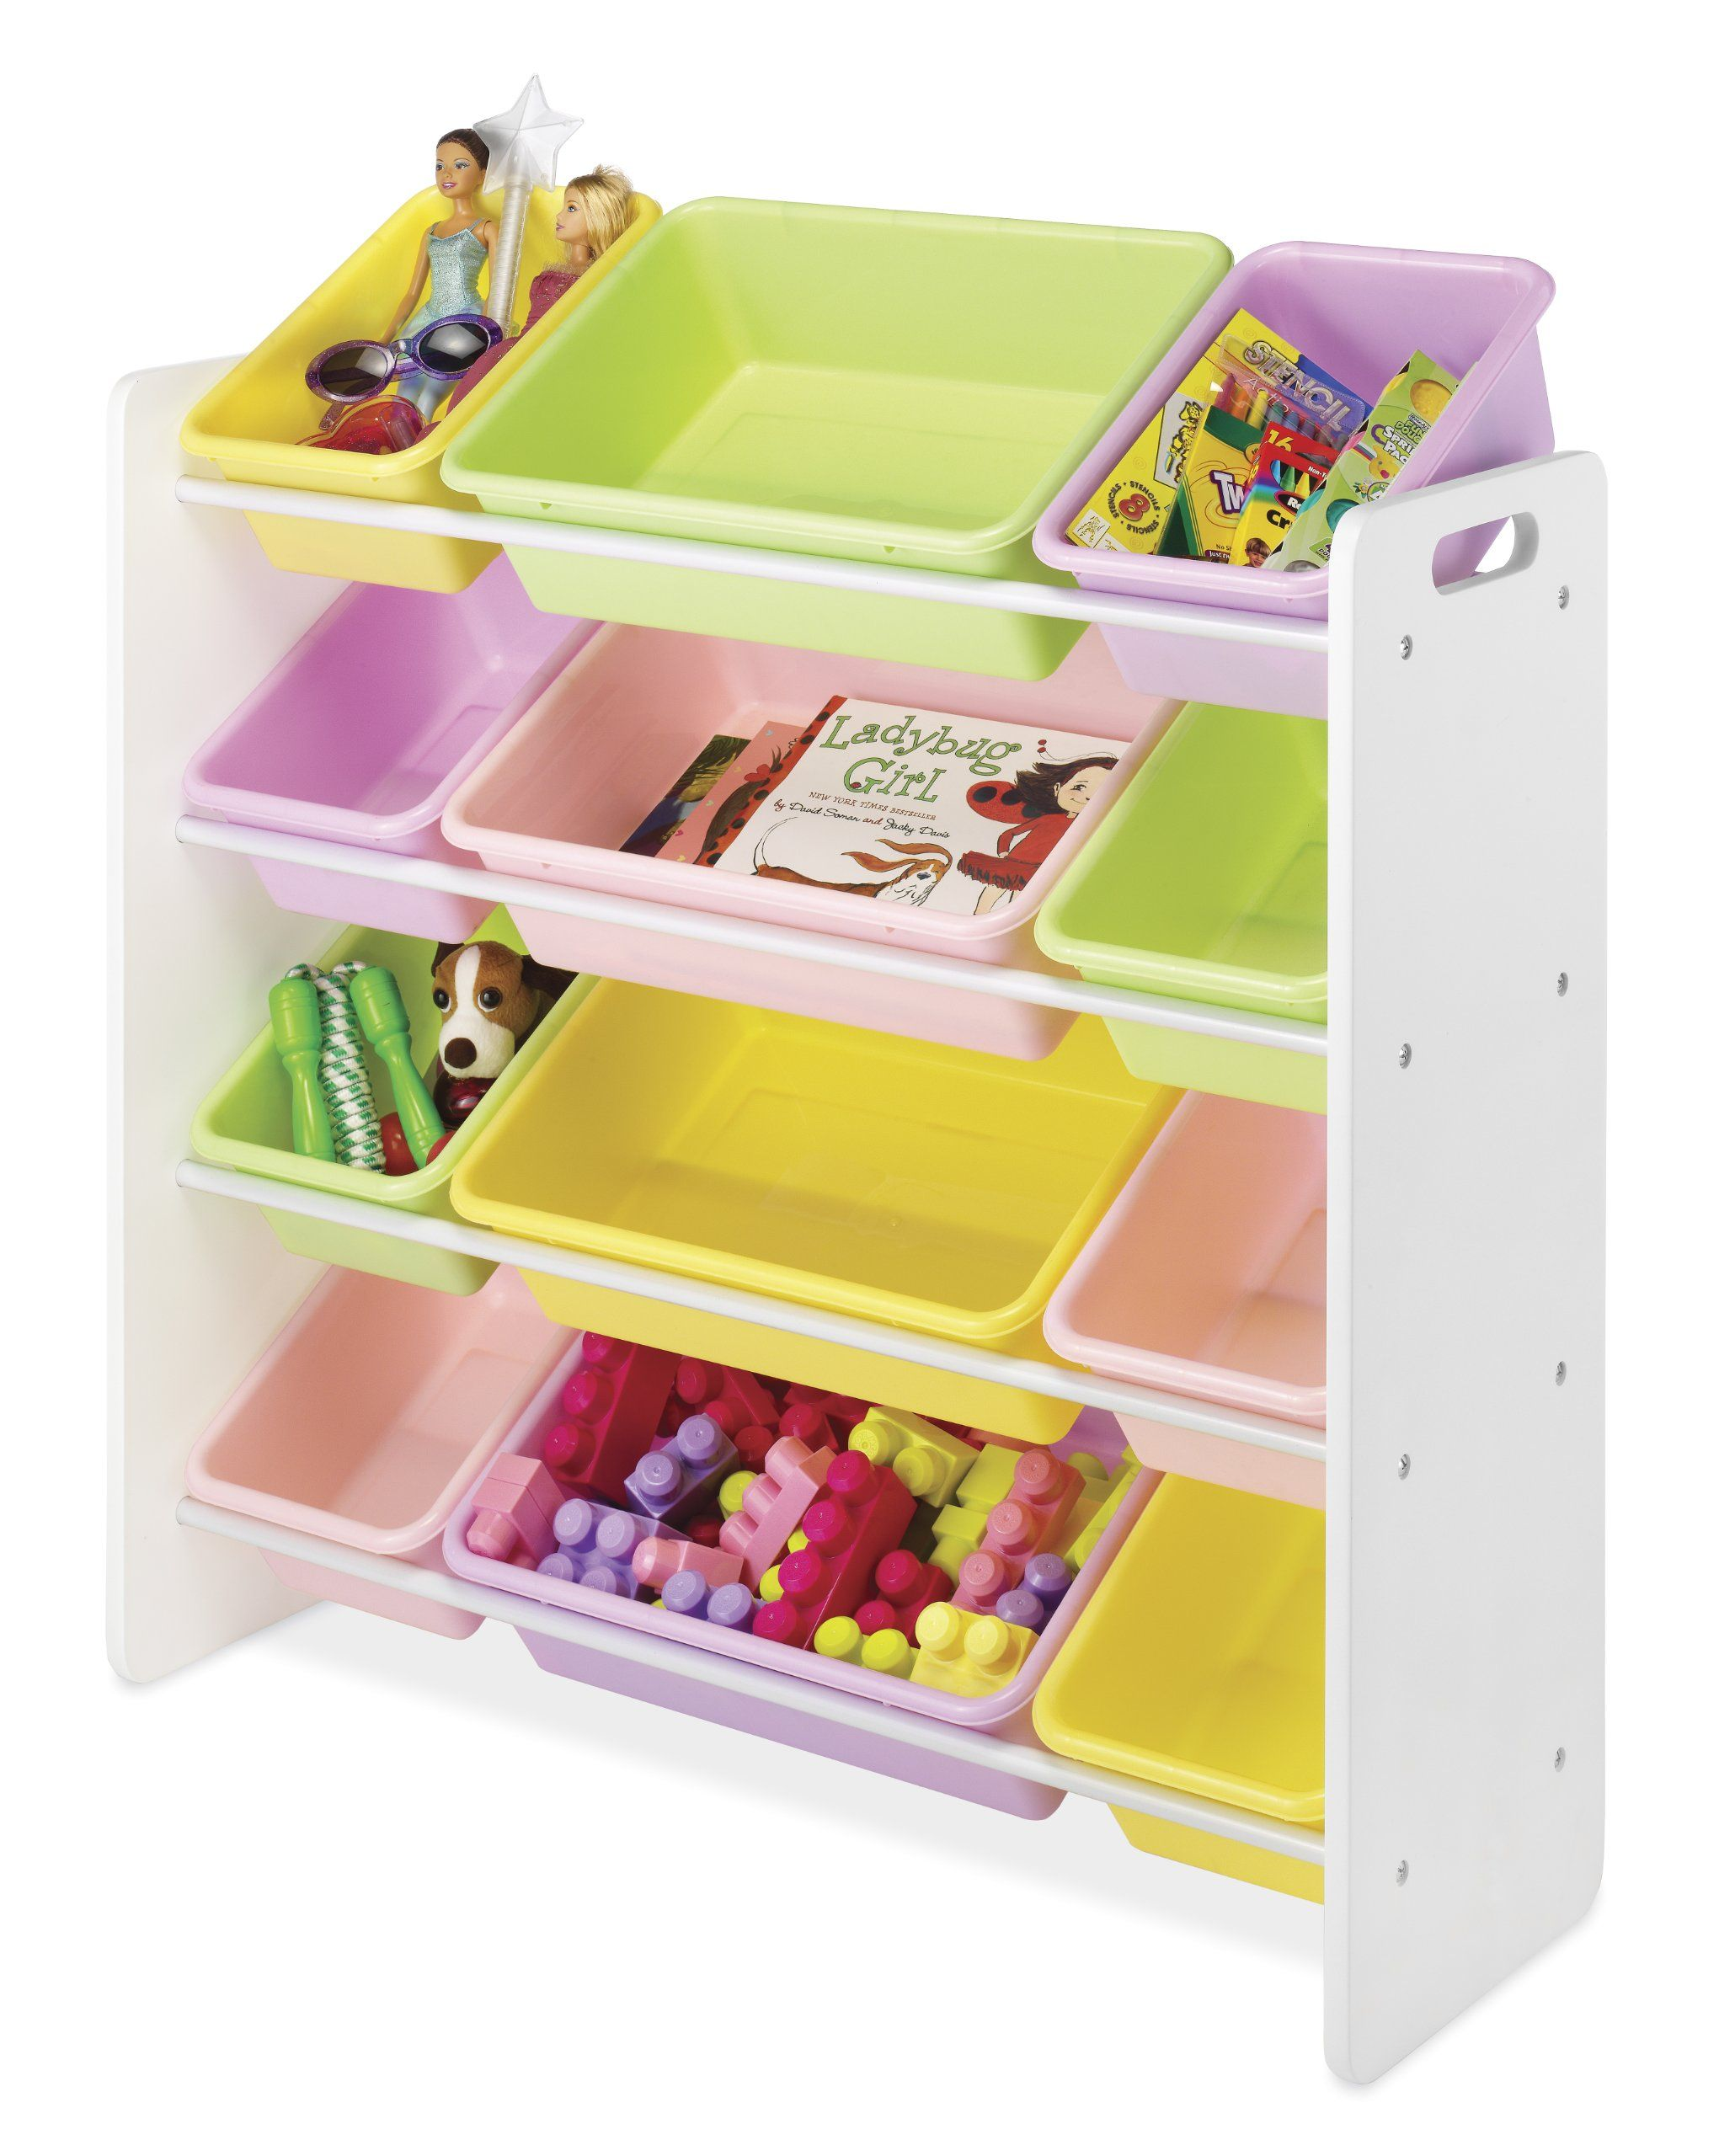 Amazon Com Whitmor 6436 2554 Ds 12 Bin Organizer Primary Toy Storage Organization Organizing Bins Toy Storage